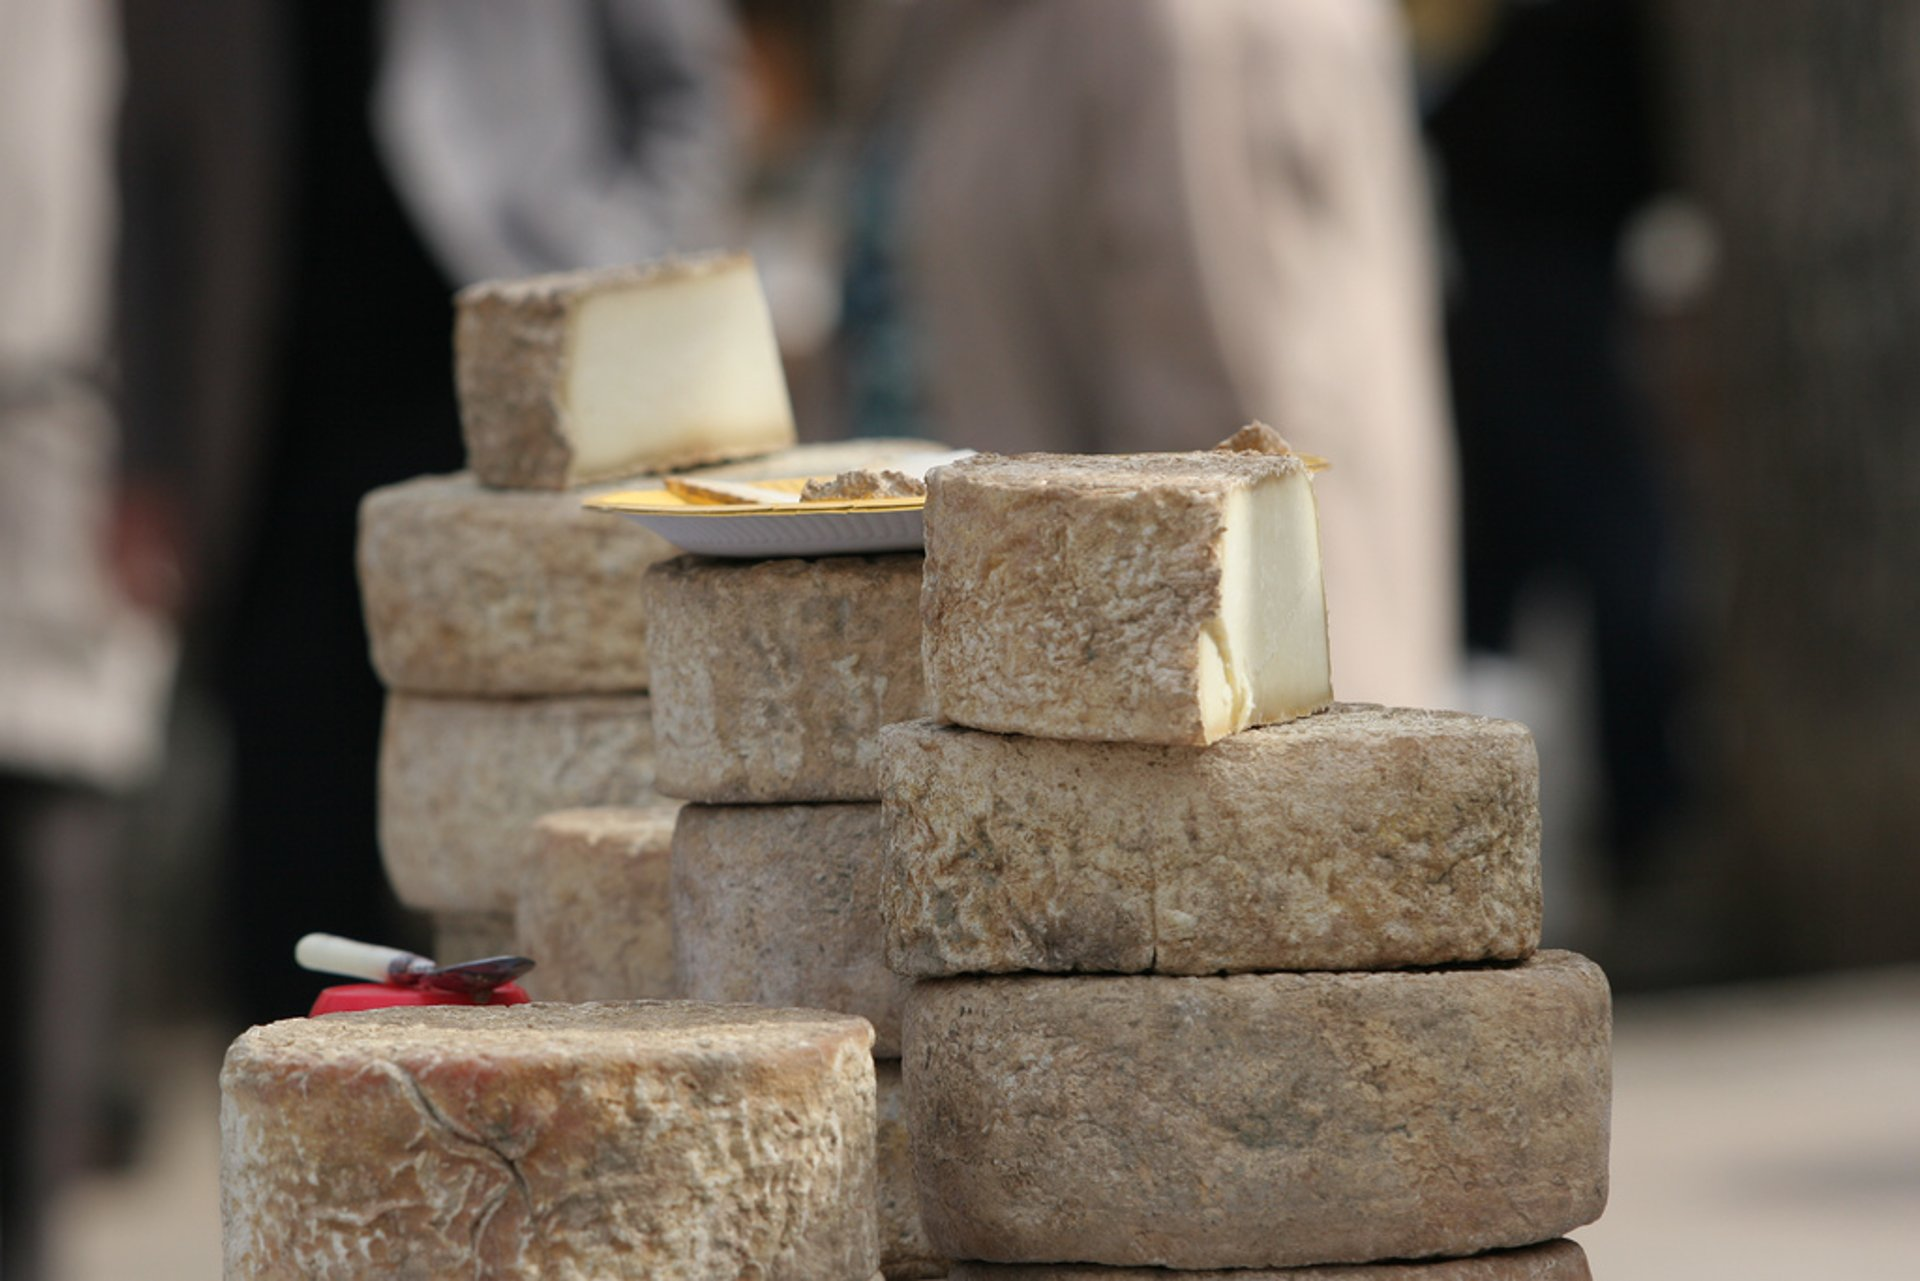 Venaco Cheese Fair or A Fiera di u Casgiu in Corsica - Best Season 2020